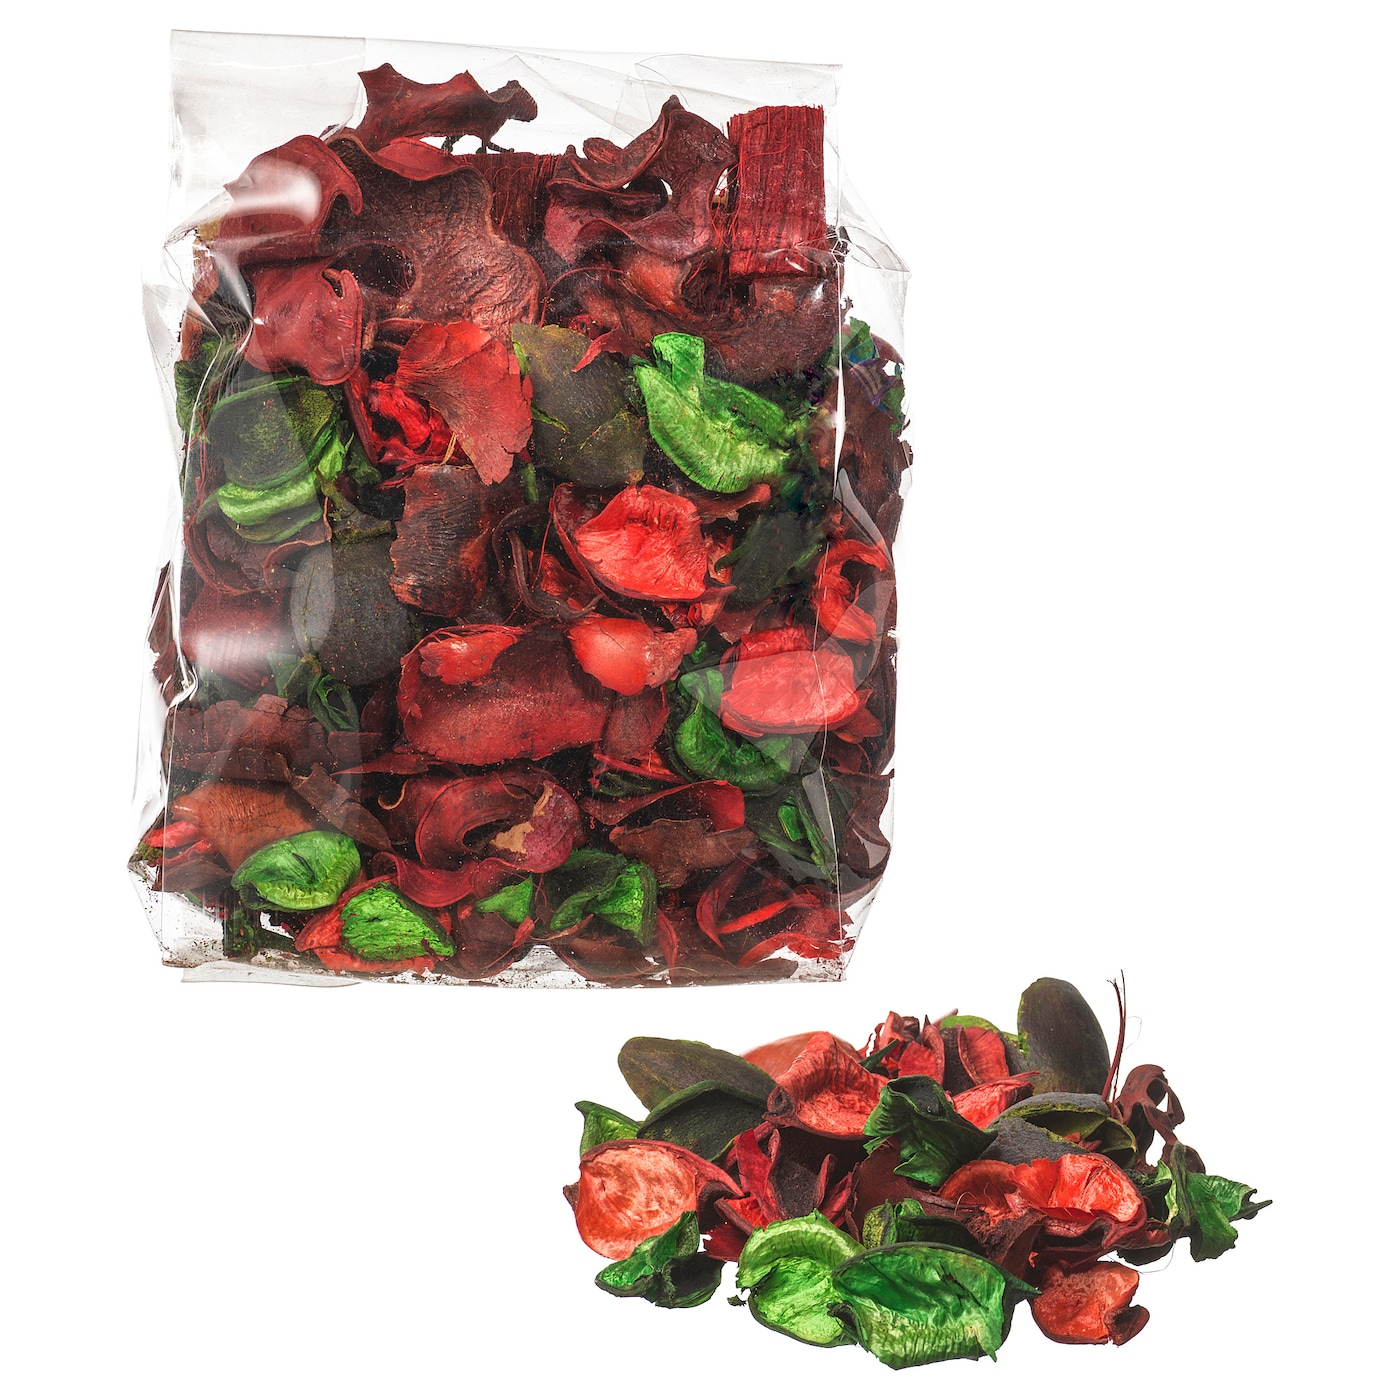 IKEA DOFTA potpourri Ripe scent of sweet red berries with a slight hint of flowers.